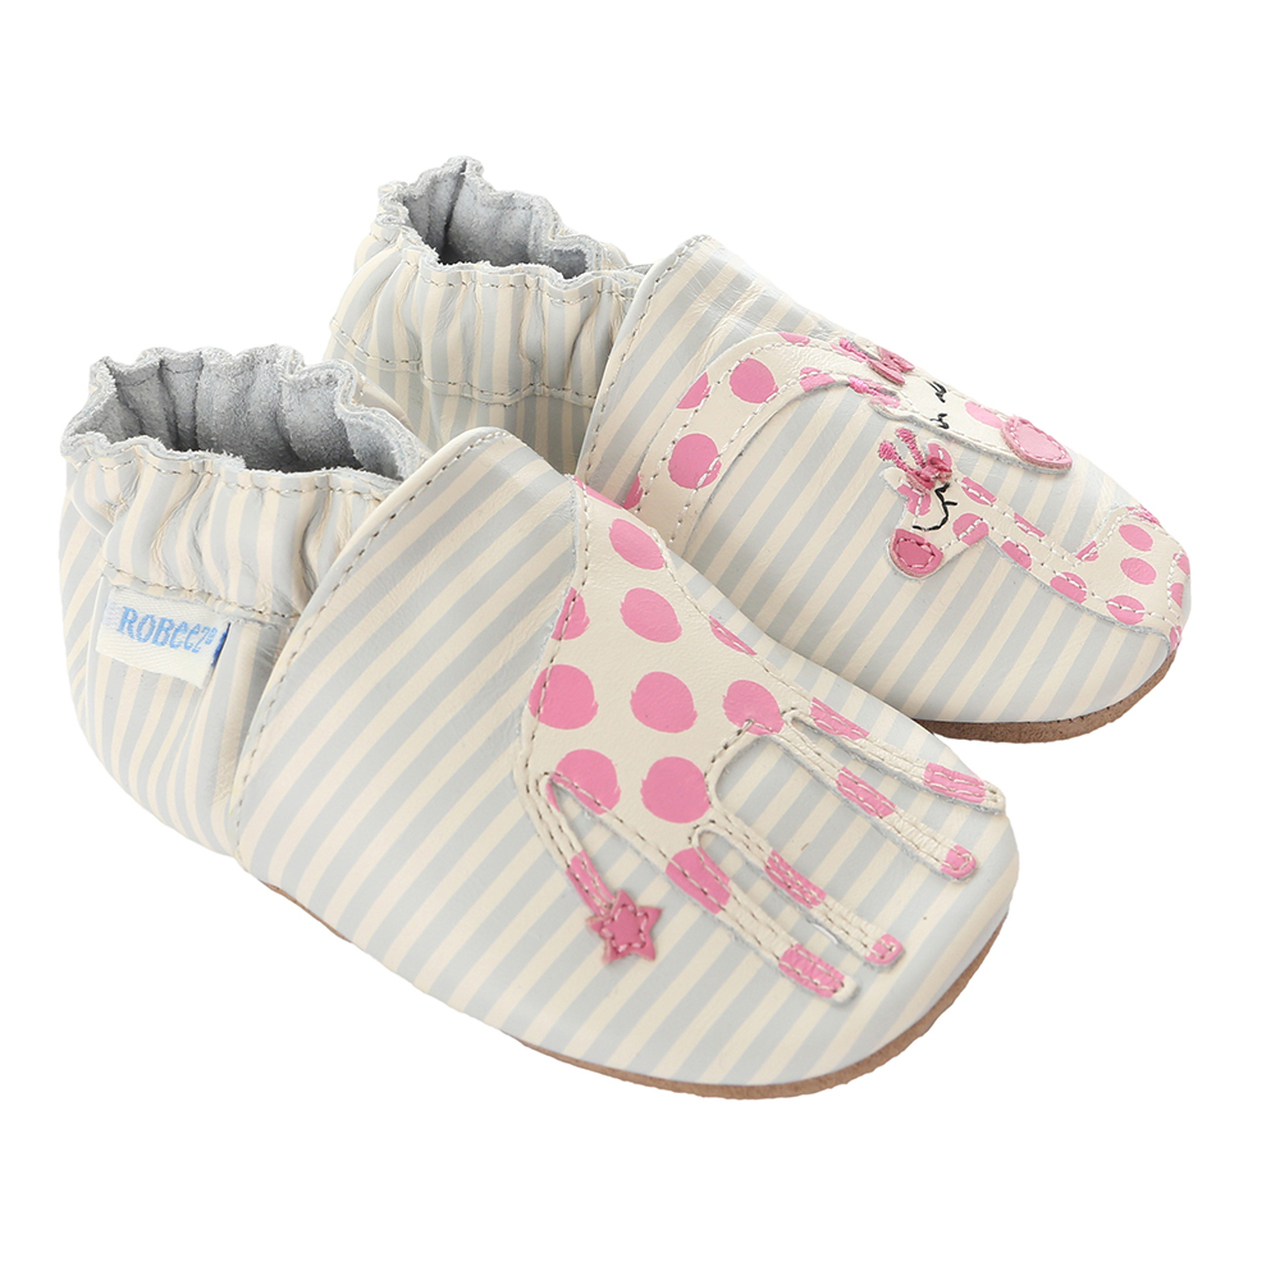 Robeez Reach for the Stars Soft Soles